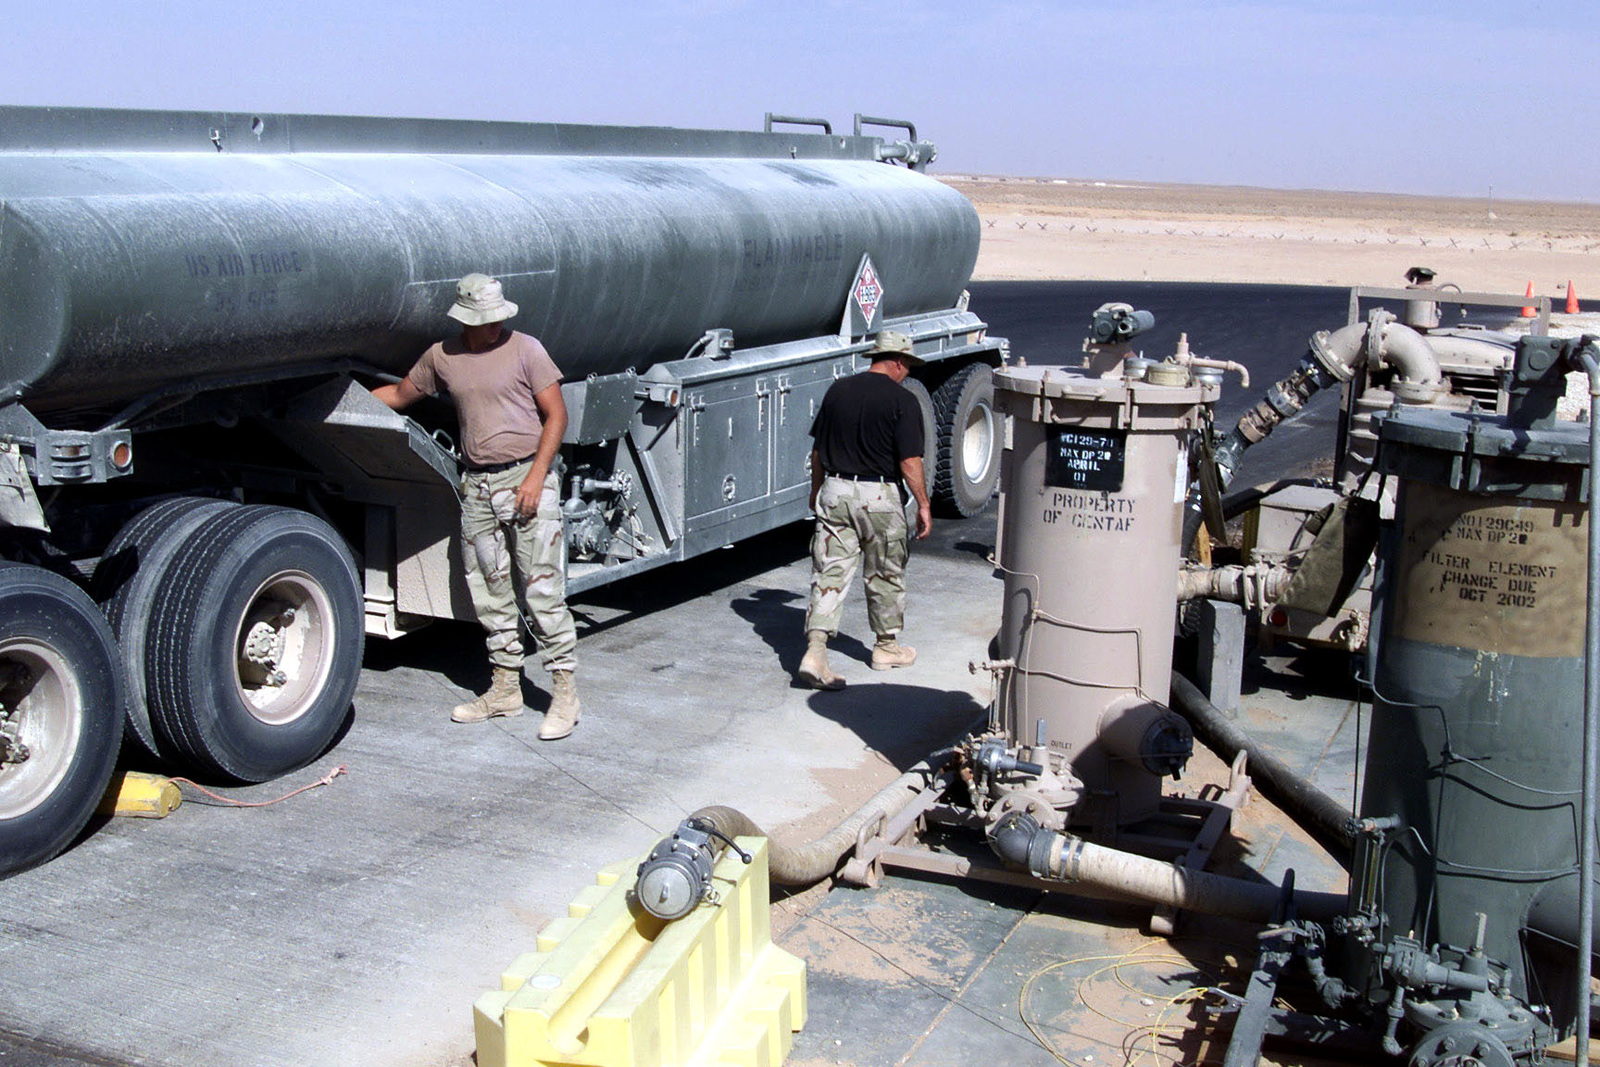 US Air Force AIRMAN First Class Billy Christy, 363rd Expeditionary Supply Squadron, Fuels Flight, Prince Sultan Air Base, Saudi Arabia, attaches a hose to his truck to pump fuel to a bladder. A1C Christy is part of the coalition force here to support Operation SOUTHERN WATCH, a military effort to enforce the no-fly and no-drive zone in Southern Iraq